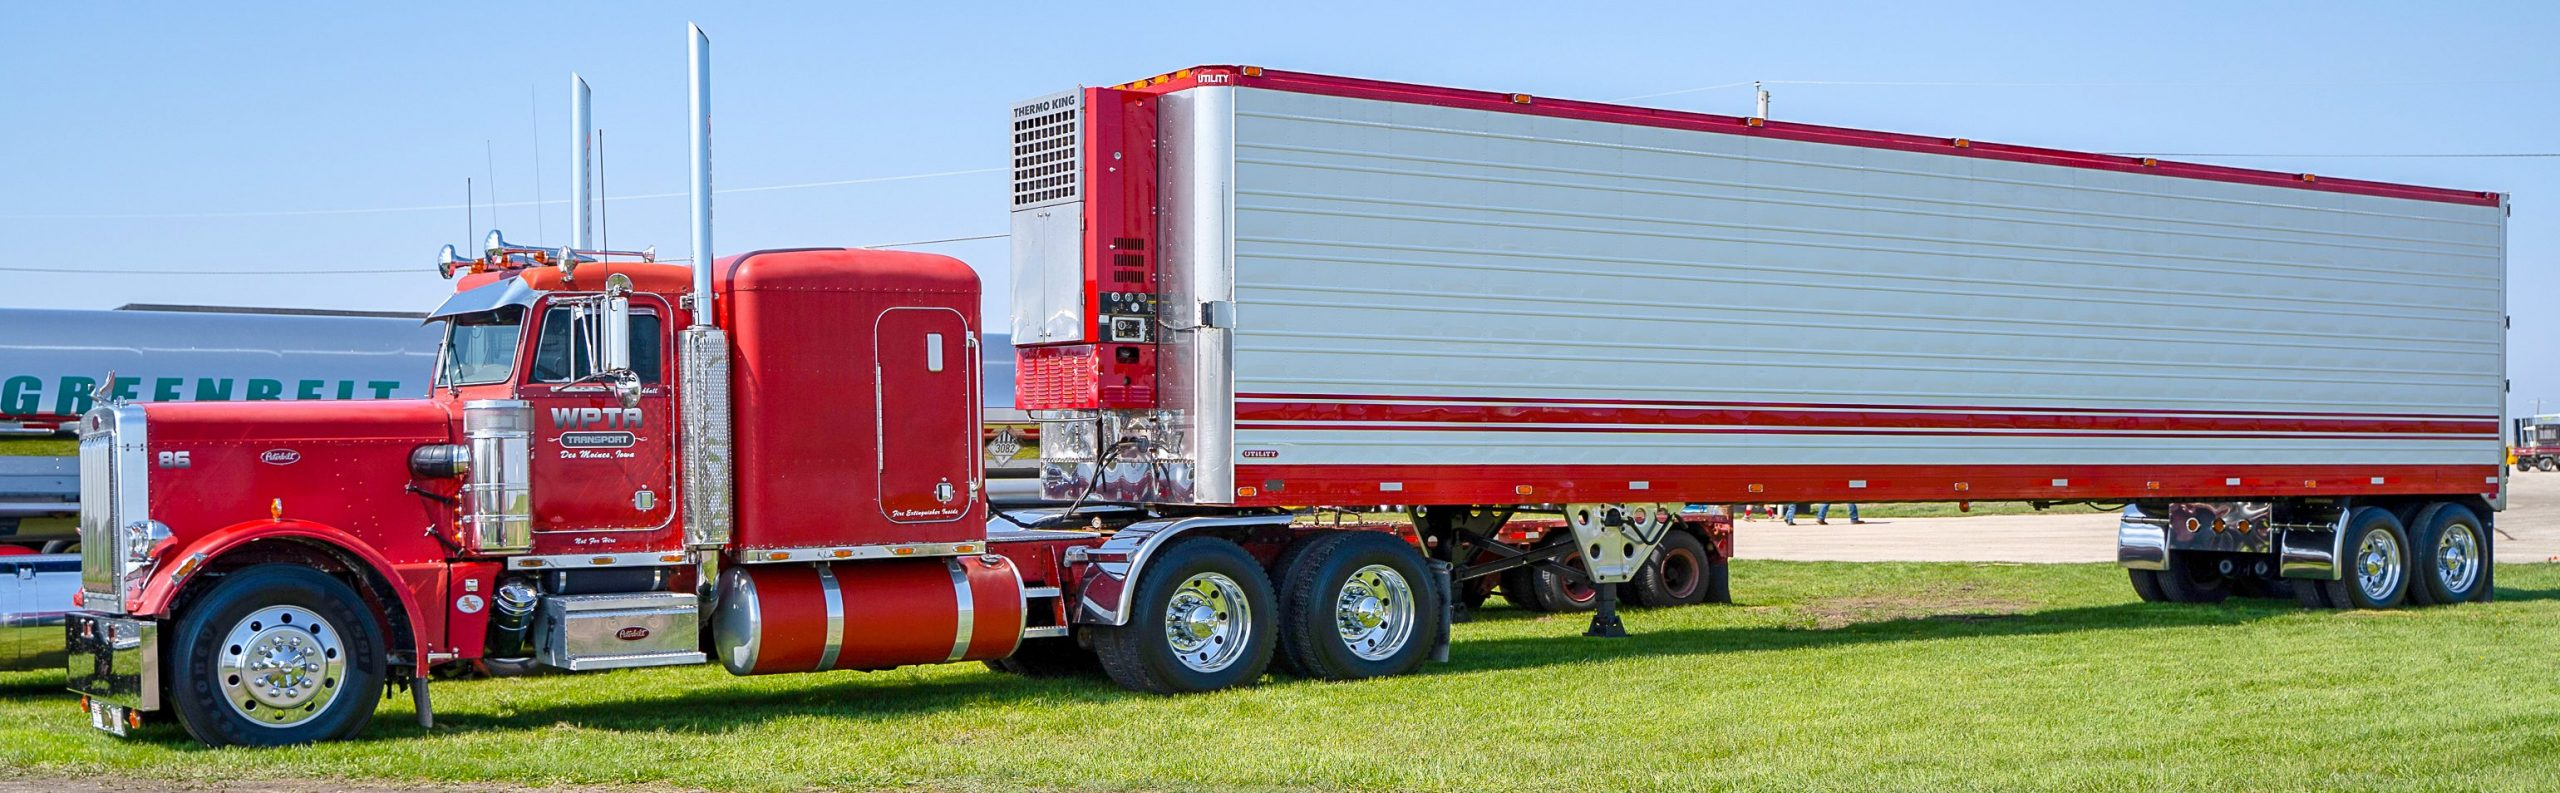 red show truck 2019 pride in your ride